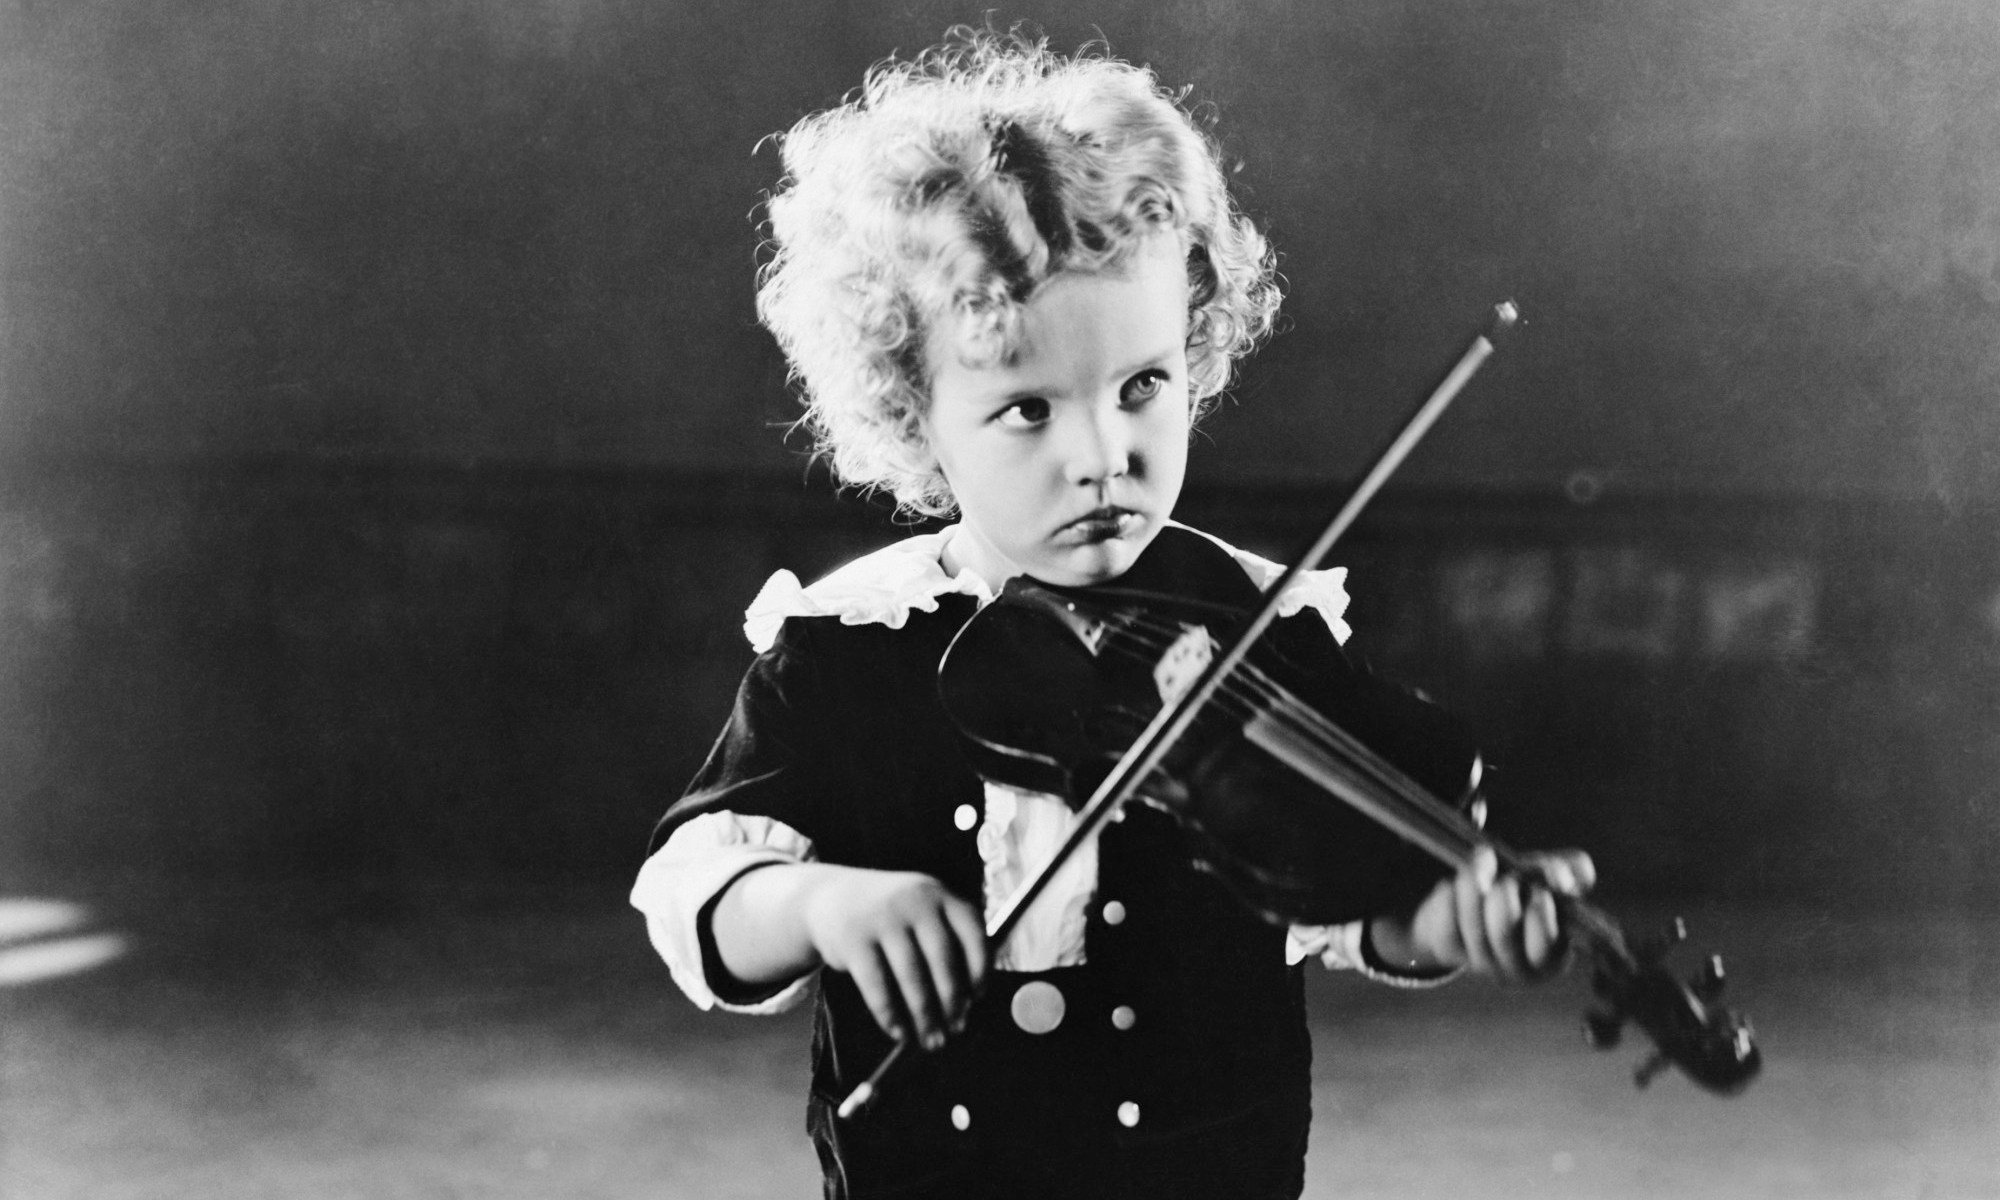 Little boy playing violin. What vs how can make a big difference in learning and development